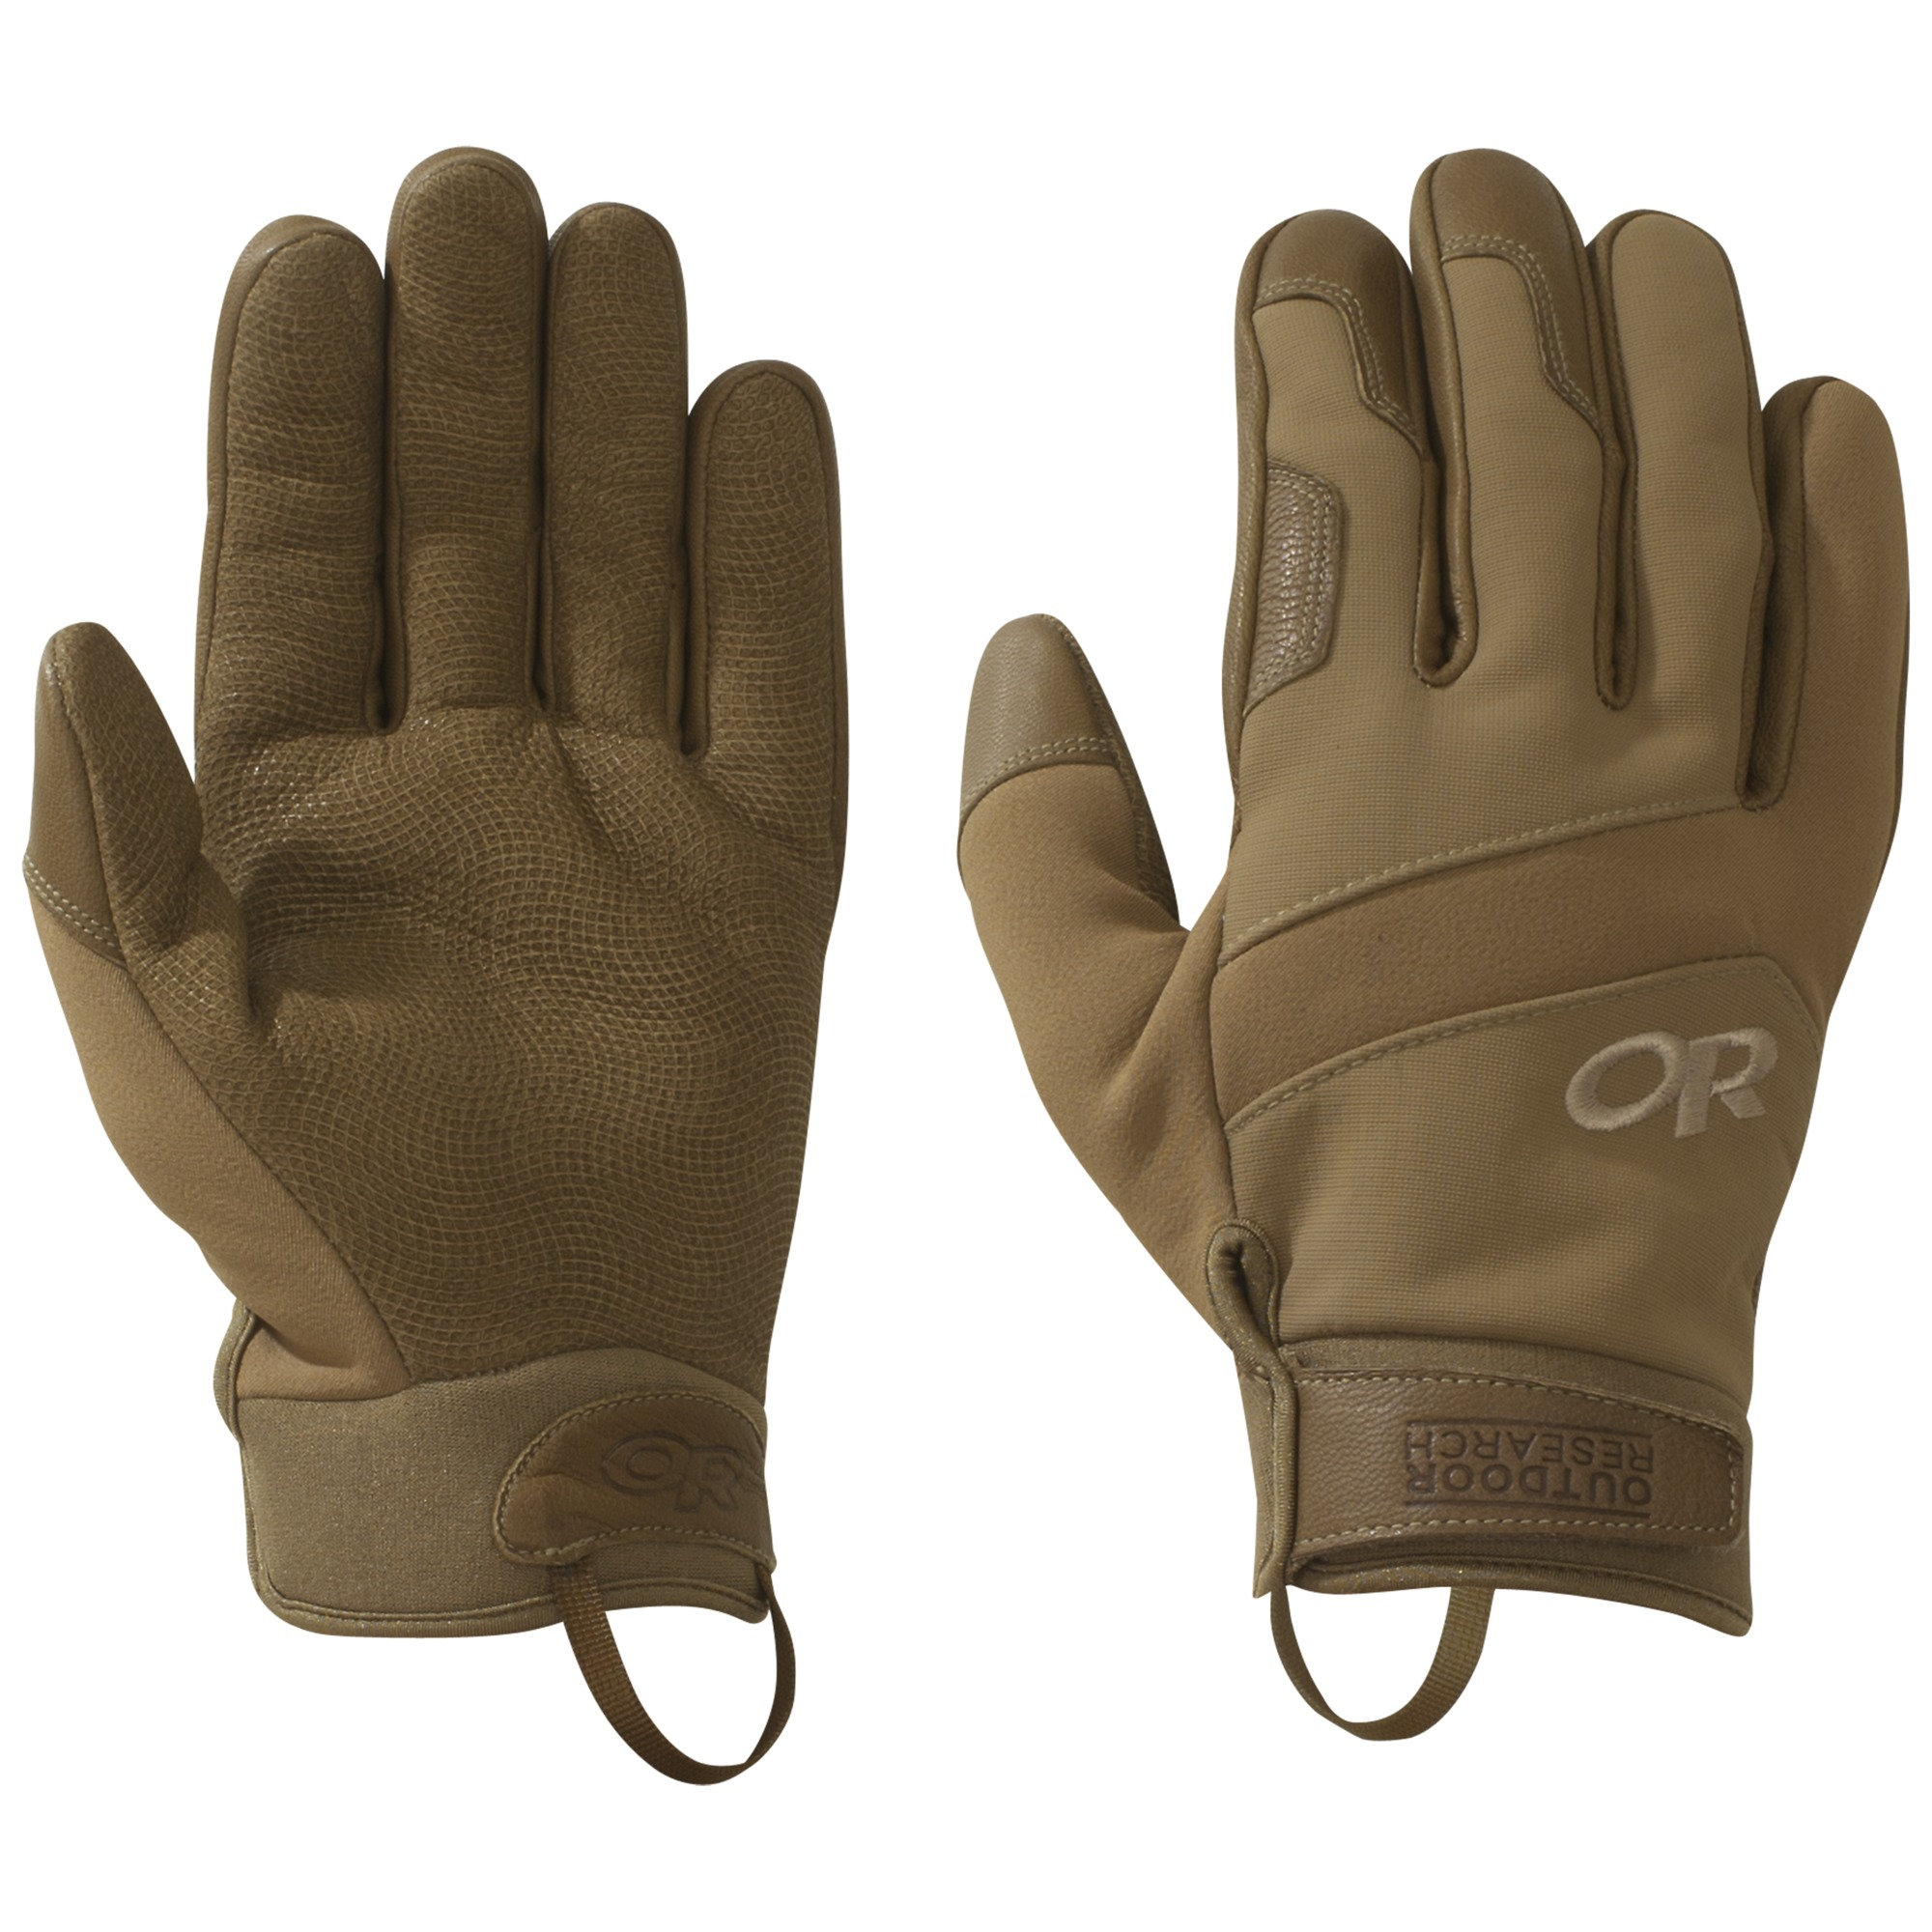 Mens leather gloves with cuff - Hover To Zoom